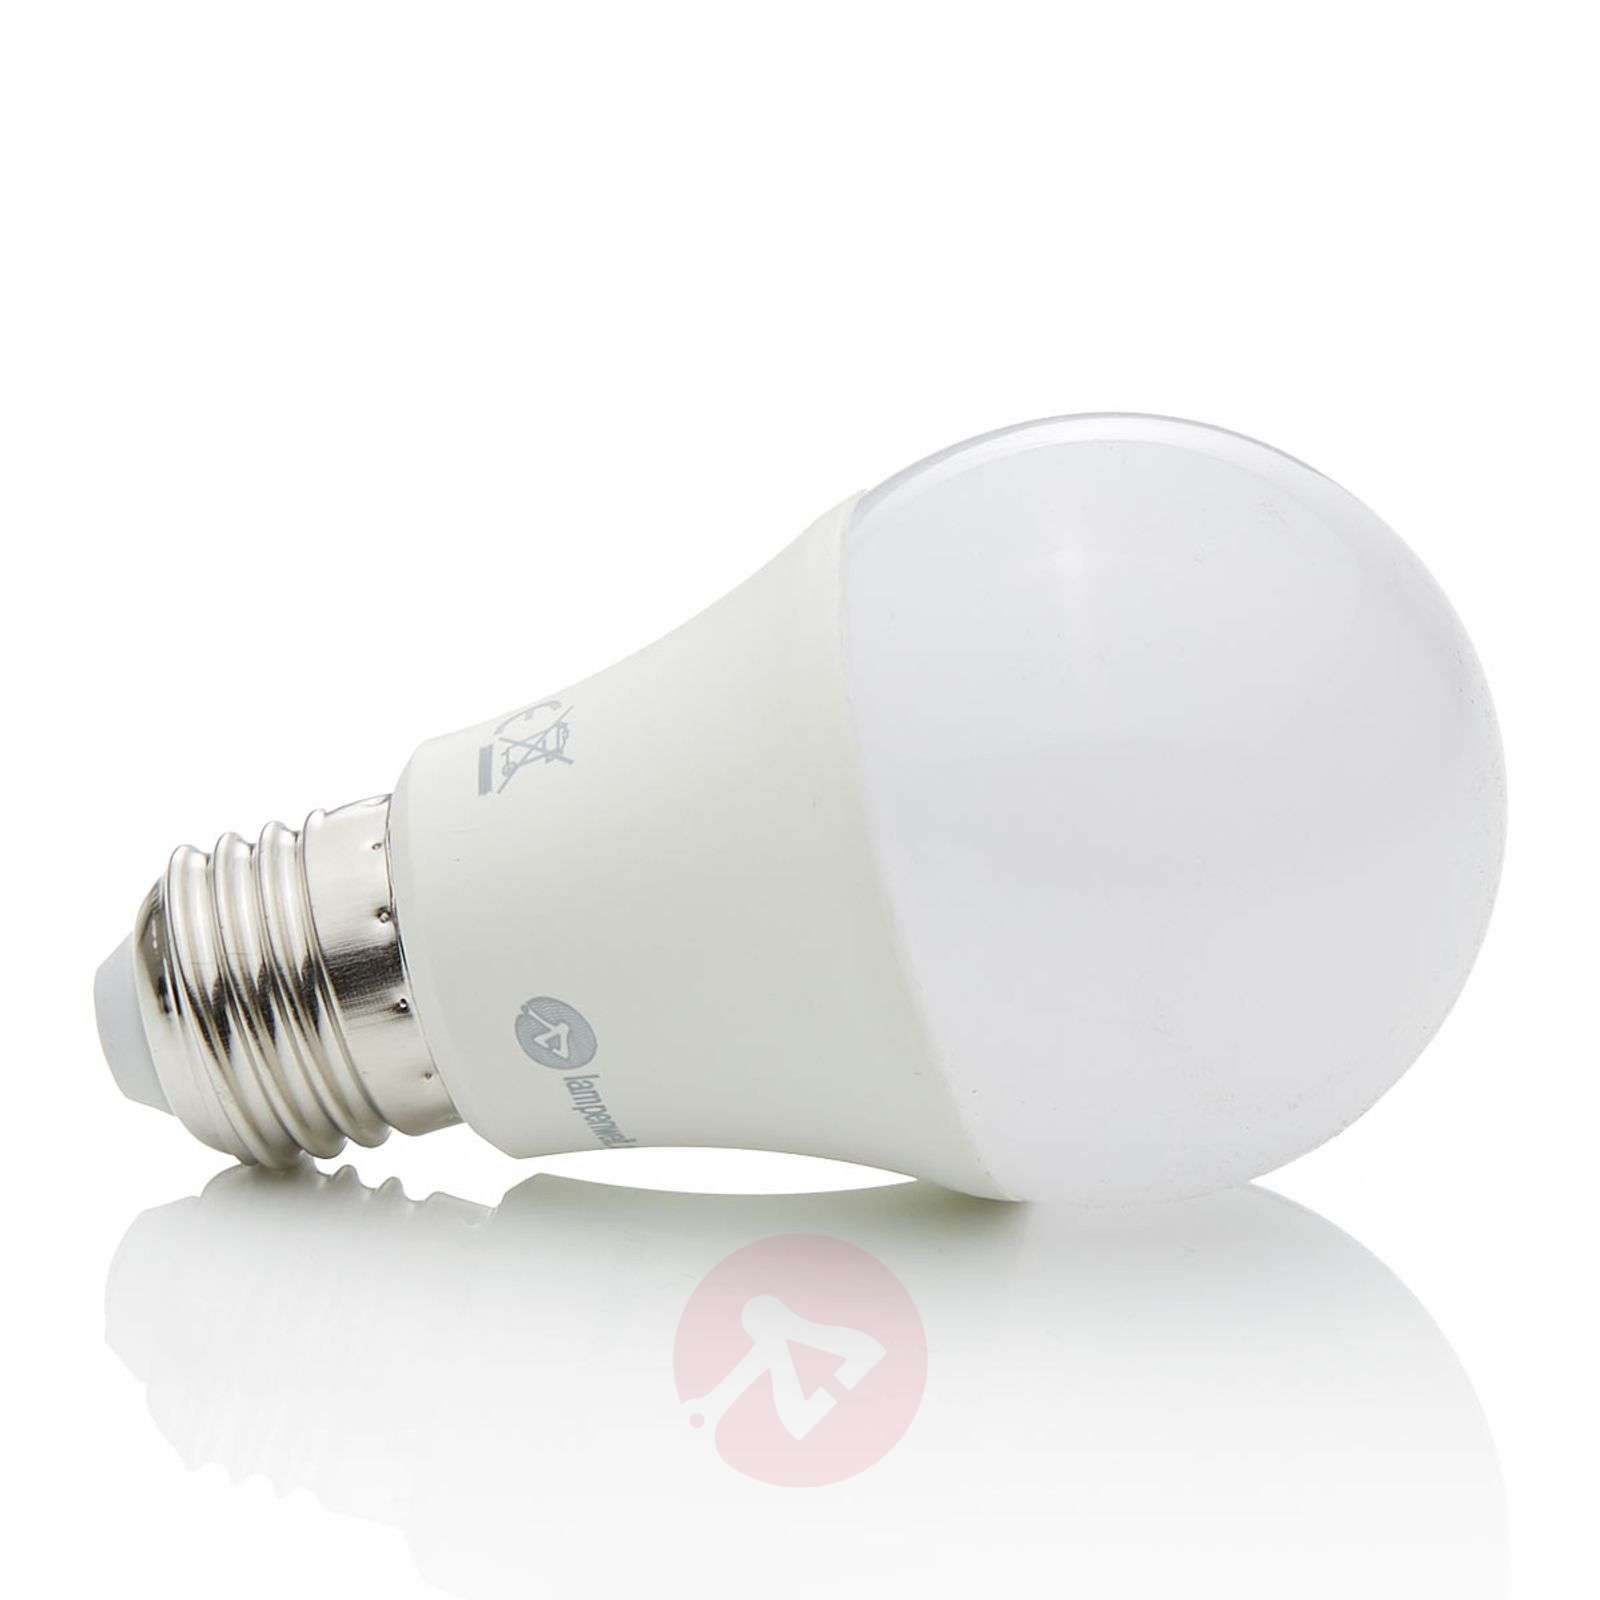 Led lamp rgbw e27 7w 500 lumen for Lampen 500 lux